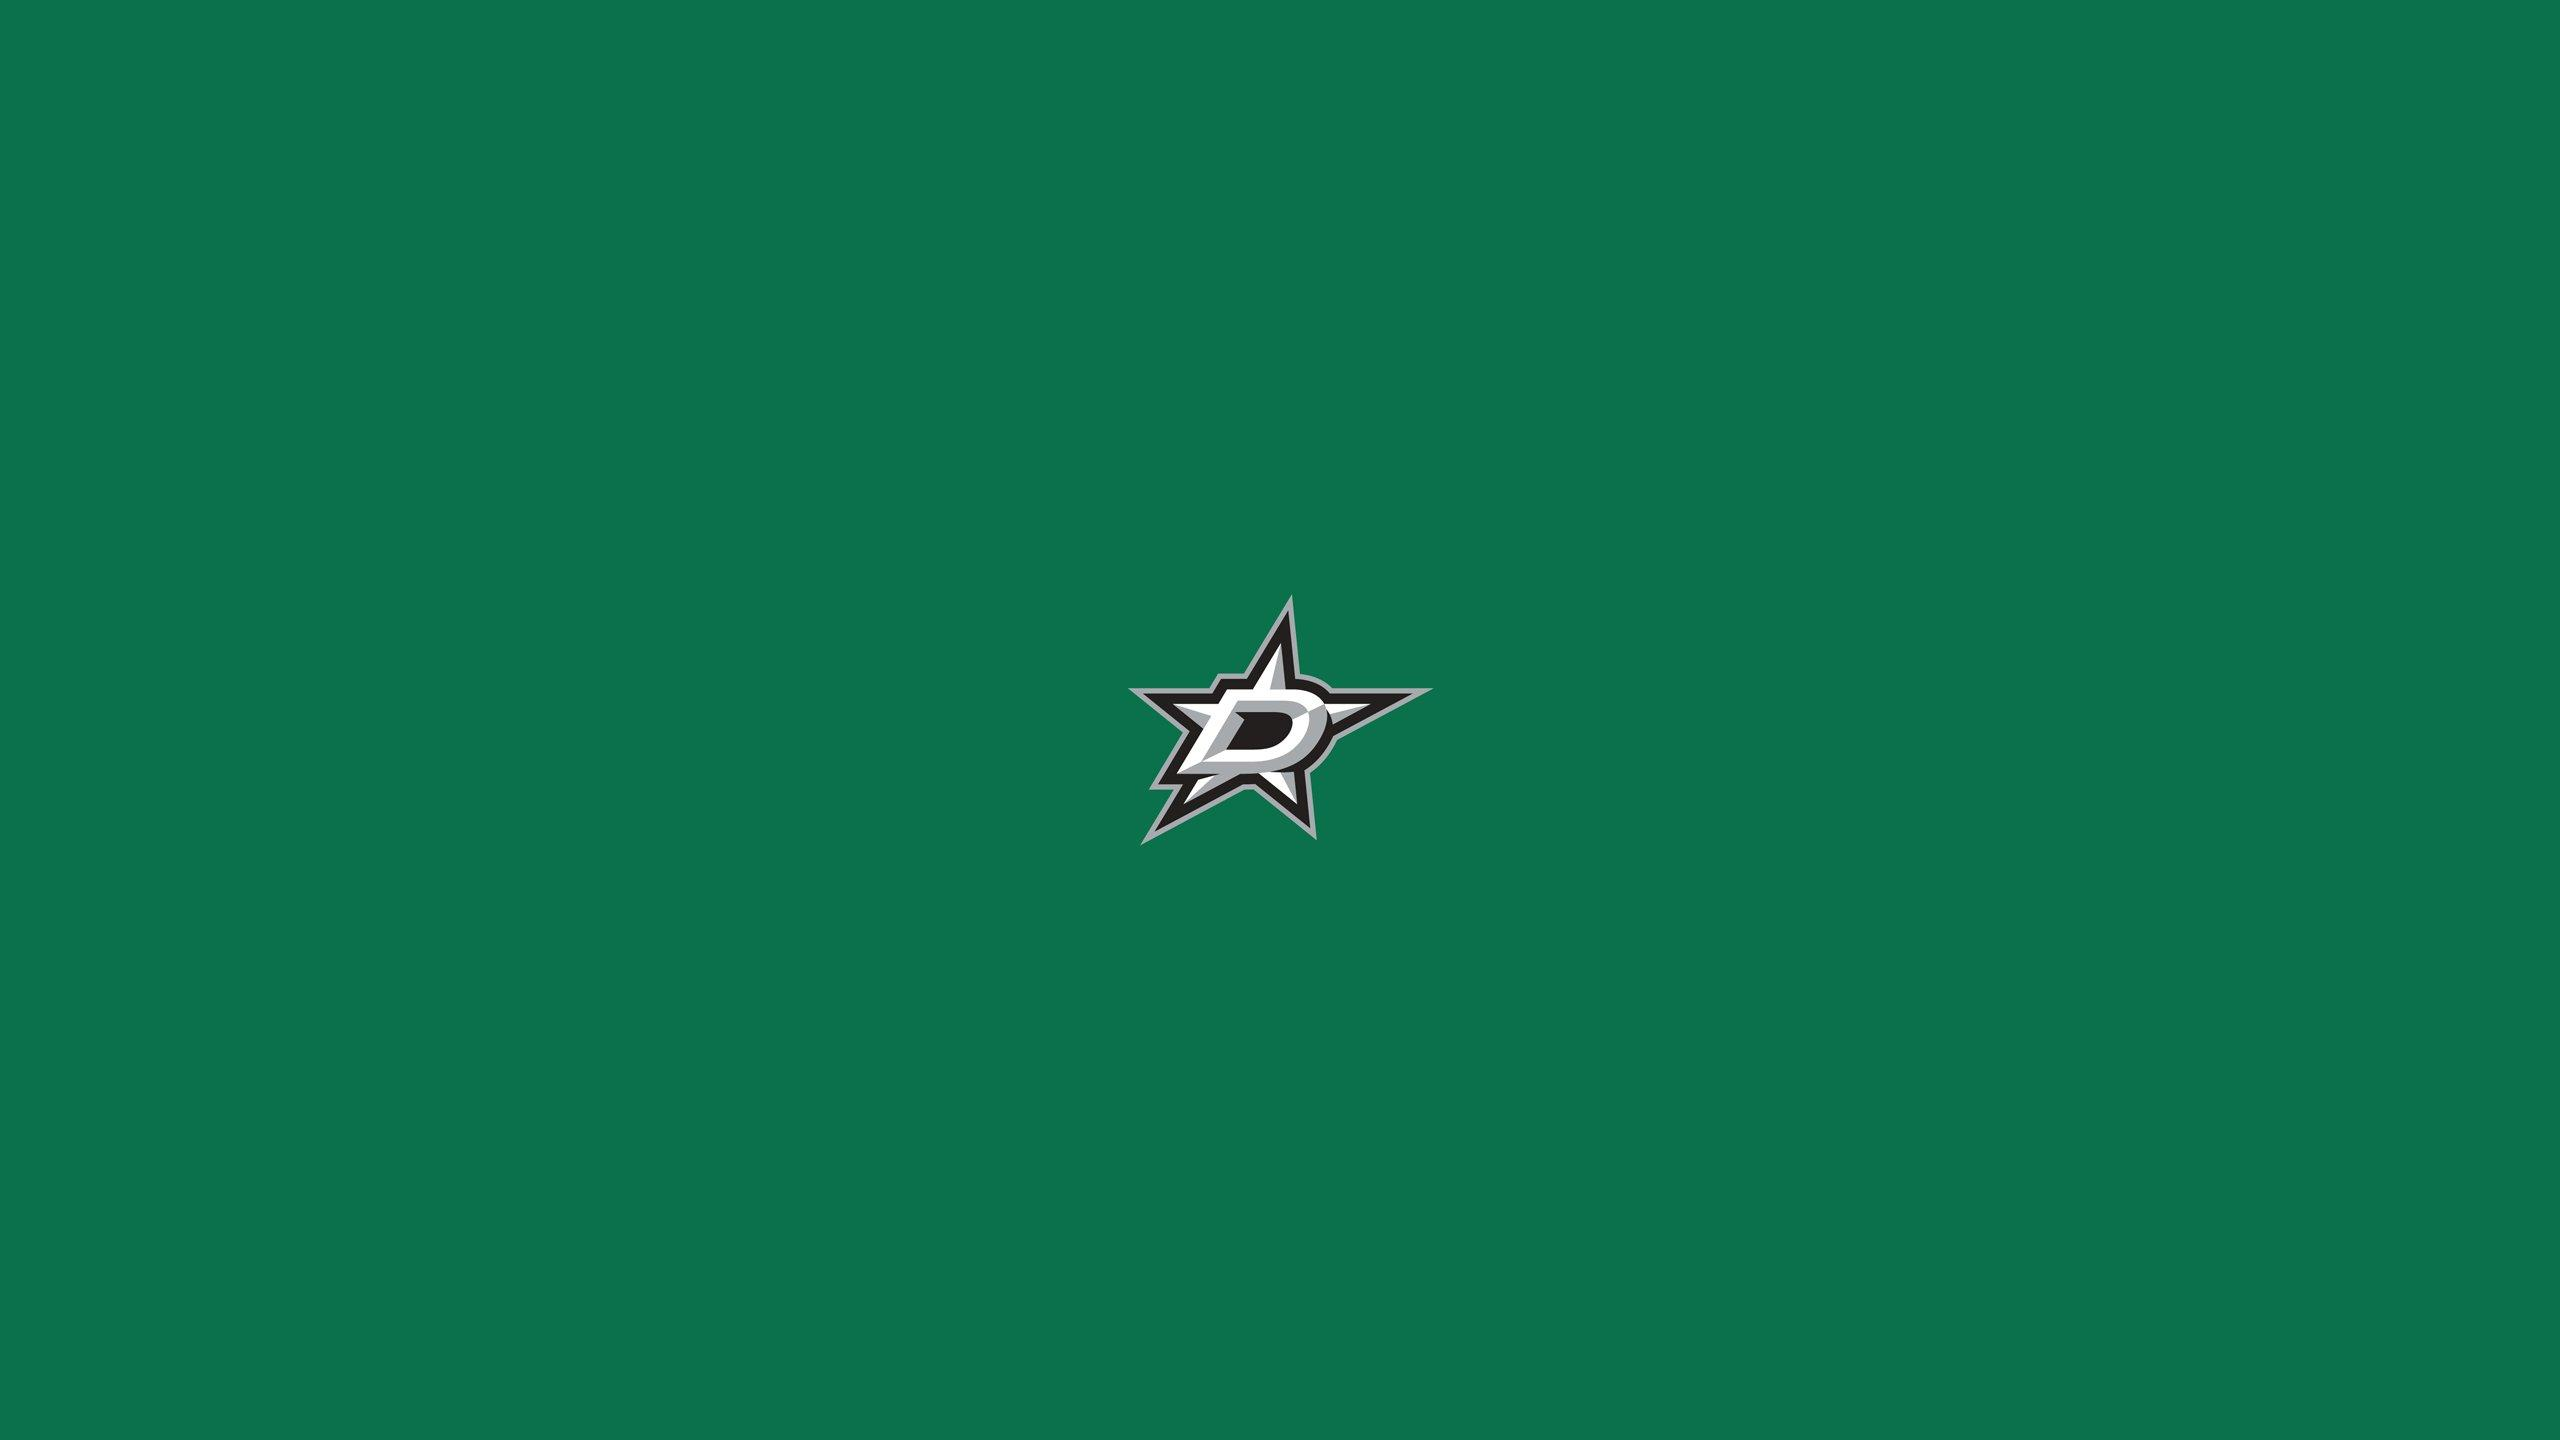 DALLAS STARS nhl hockey texas (1) wallpaper | 2560x1440 | 323192 ...